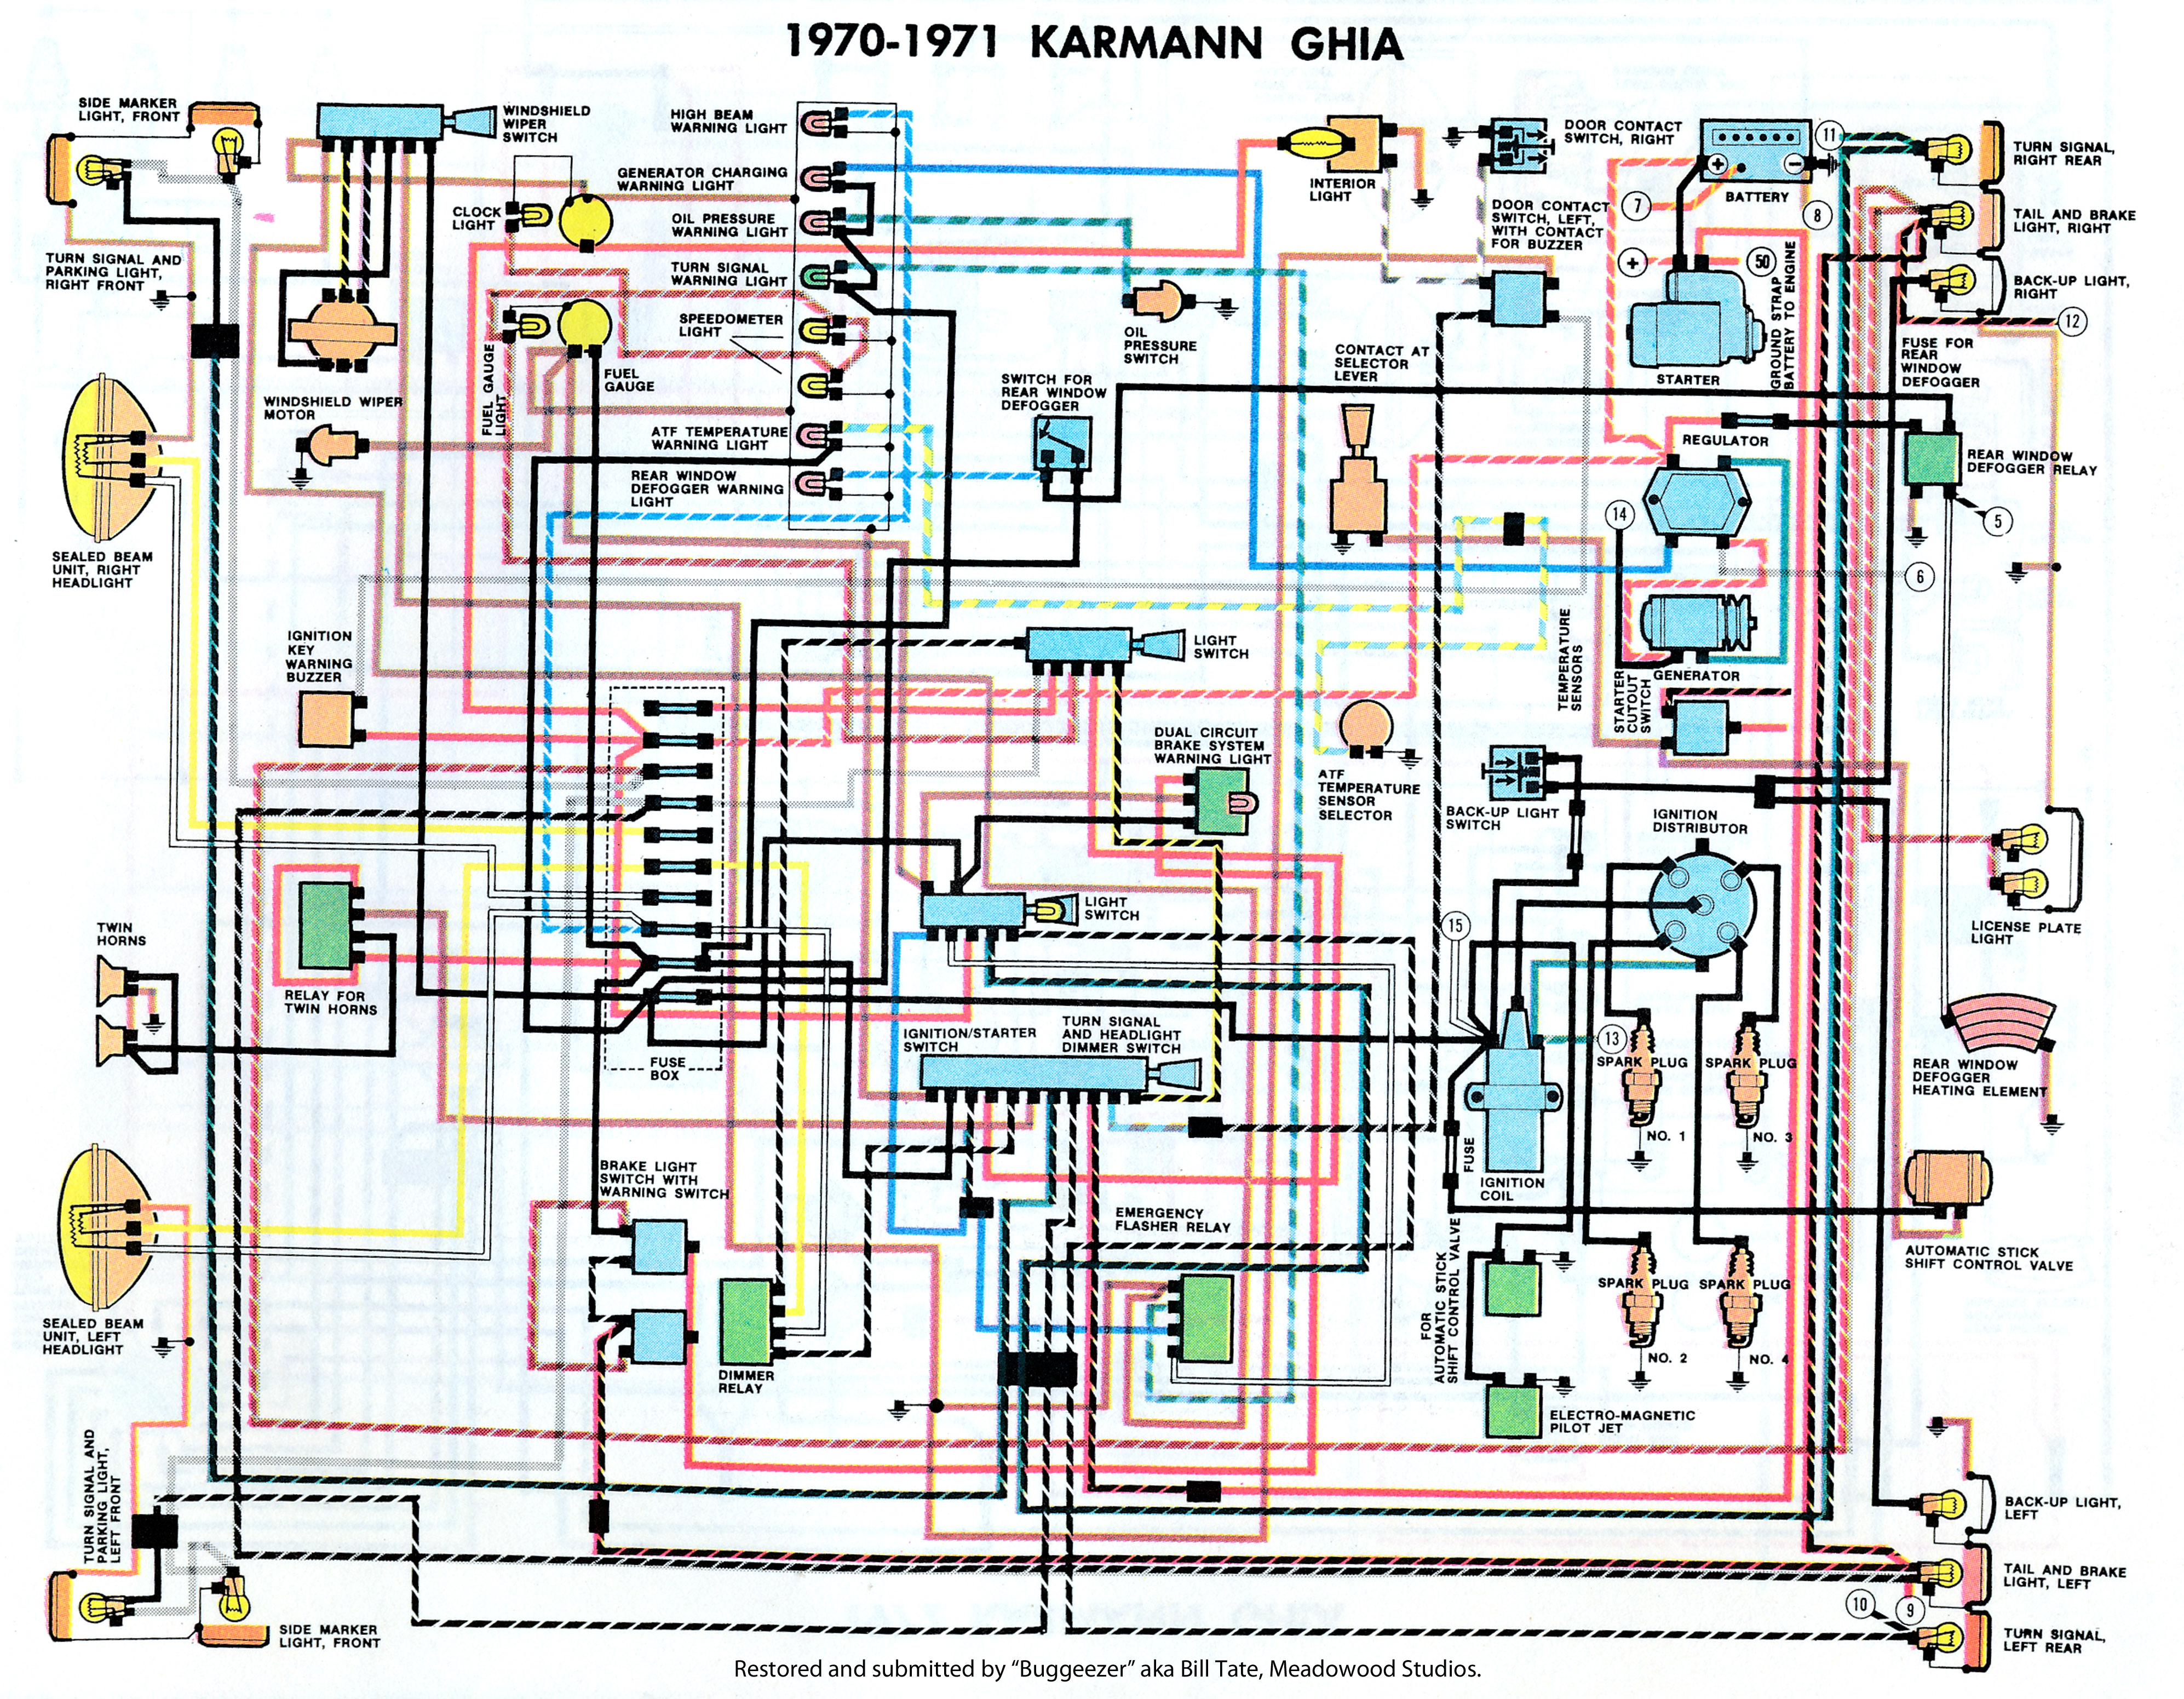 74 karmann ghia wiring diagram easy wiring diagrams u2022 rh art isere com